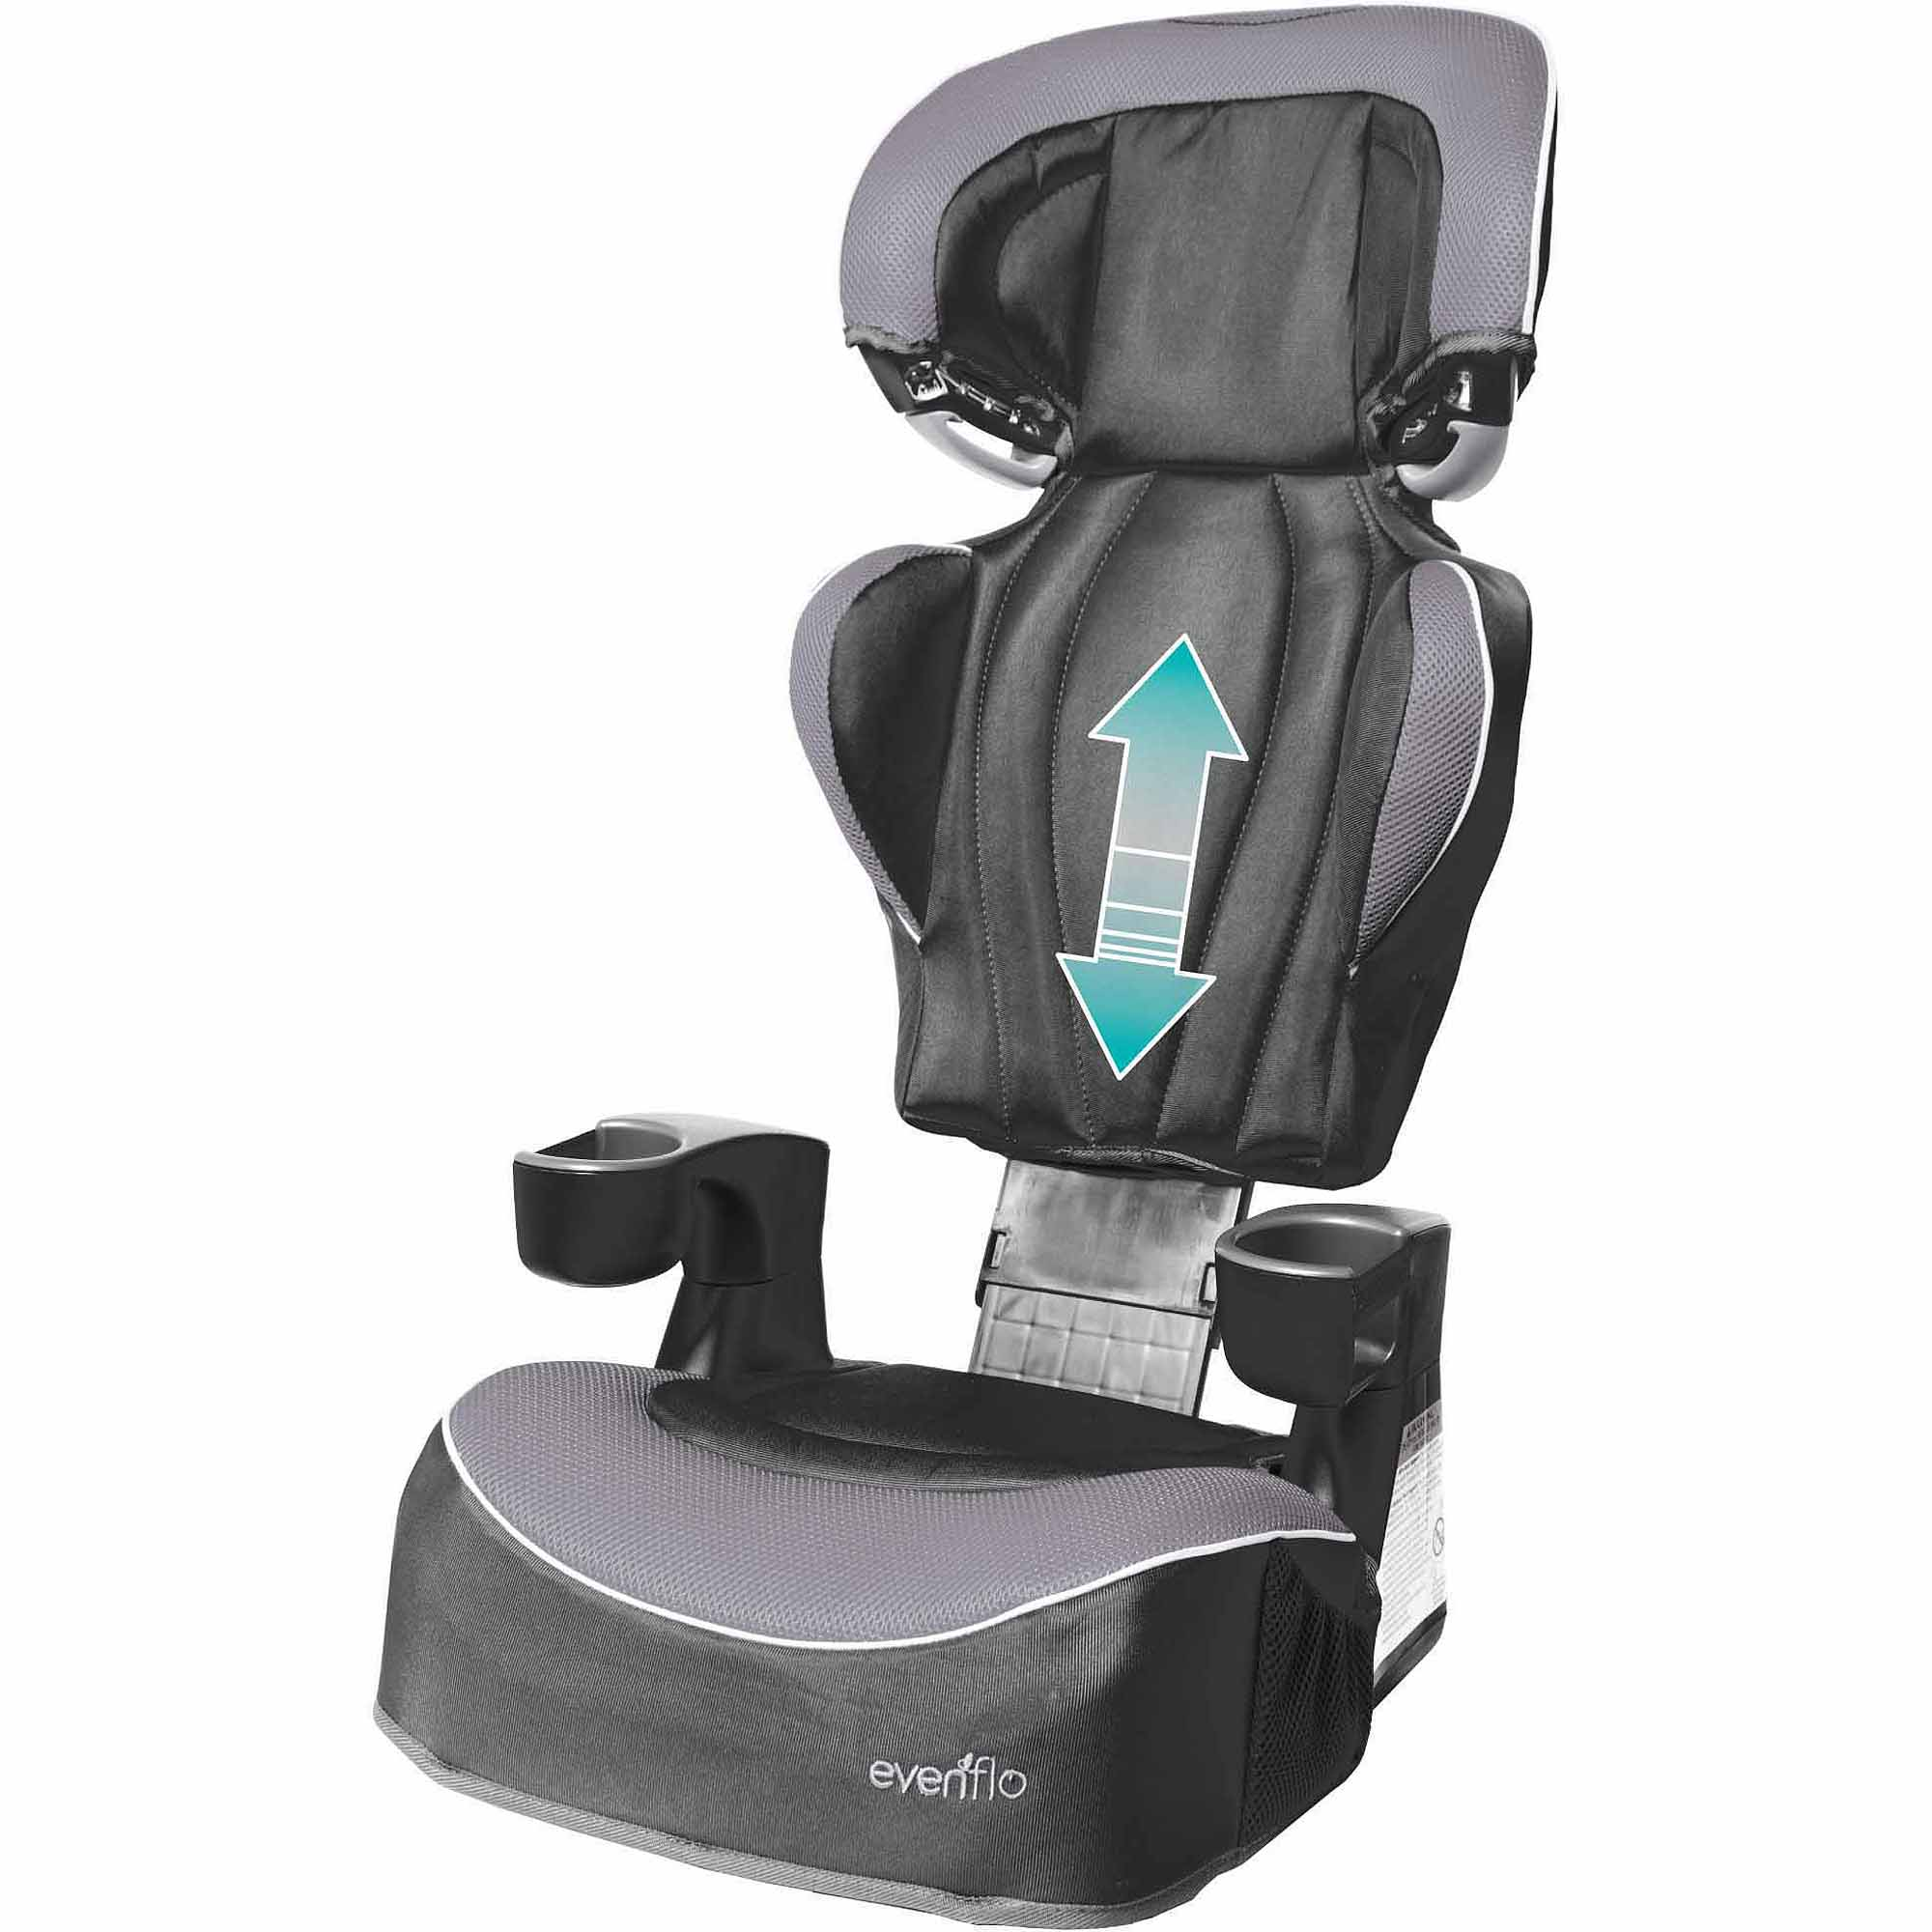 evenflo big kid dlx high back booster car seat jonah ebay. Black Bedroom Furniture Sets. Home Design Ideas